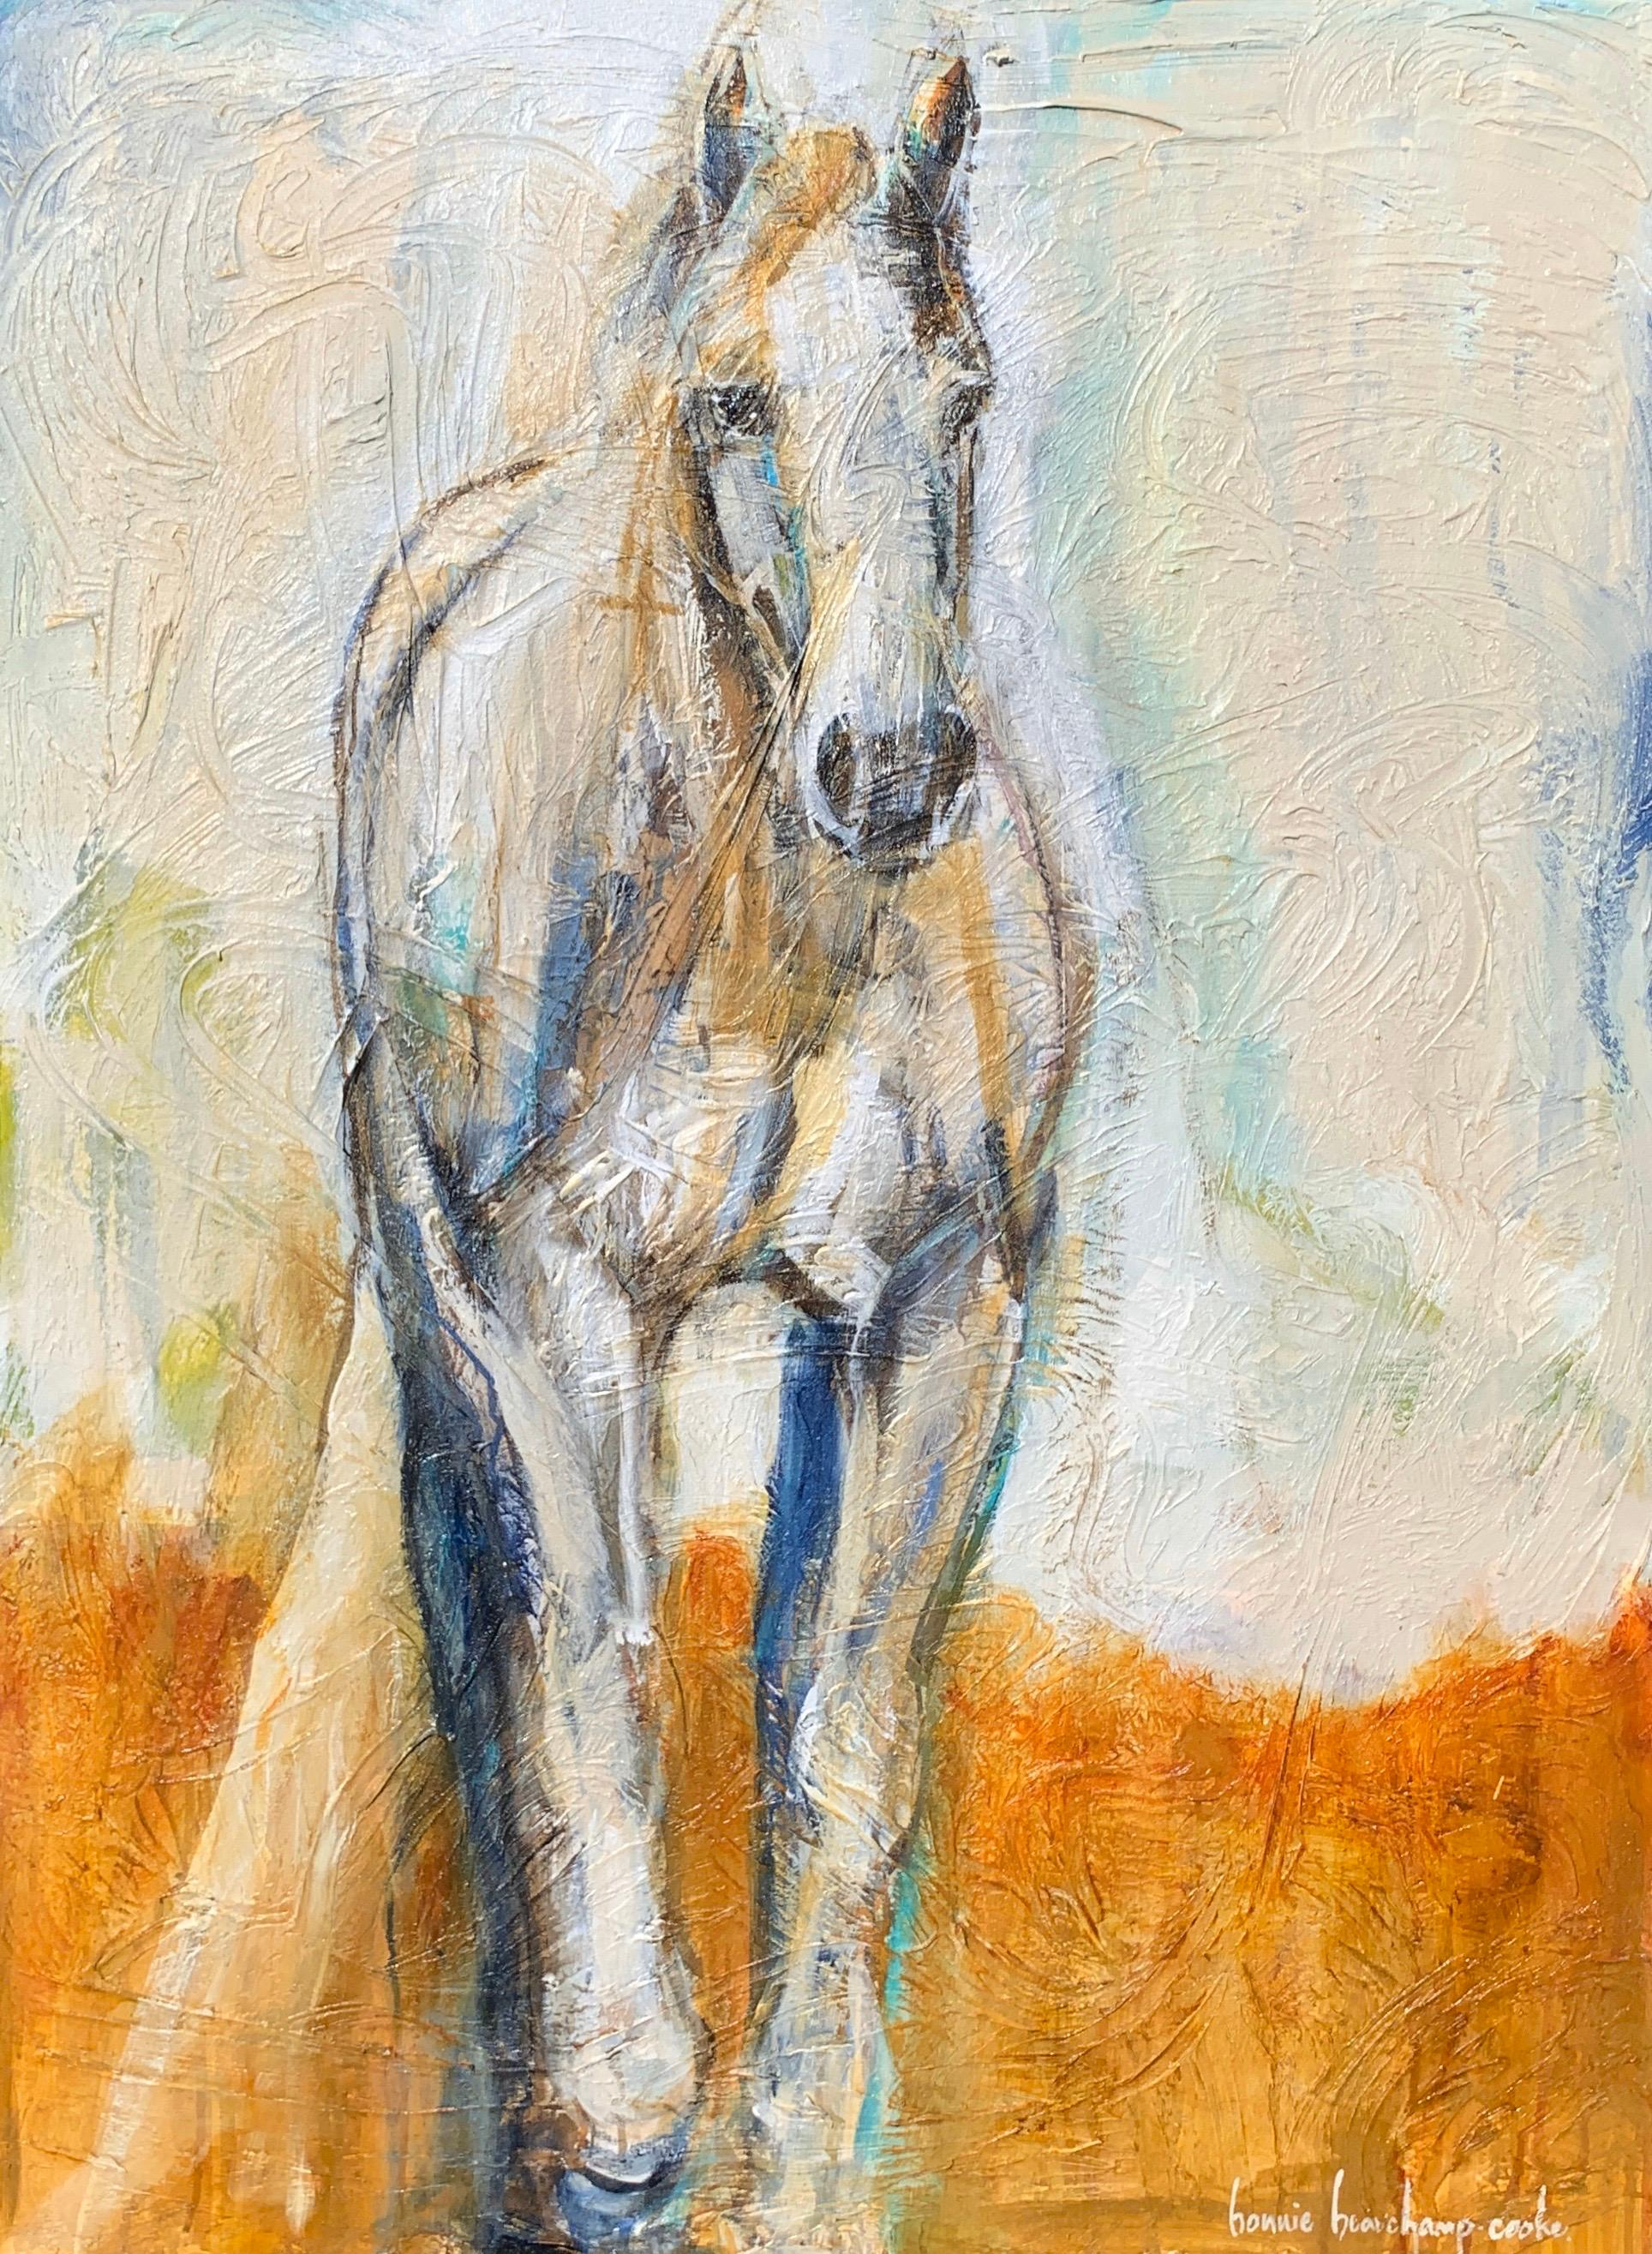 Bonnie Beauchamp Cooke Elle Large Contemporary Mixed Media On Canvas Horse Painting For Sale At 1stdibs